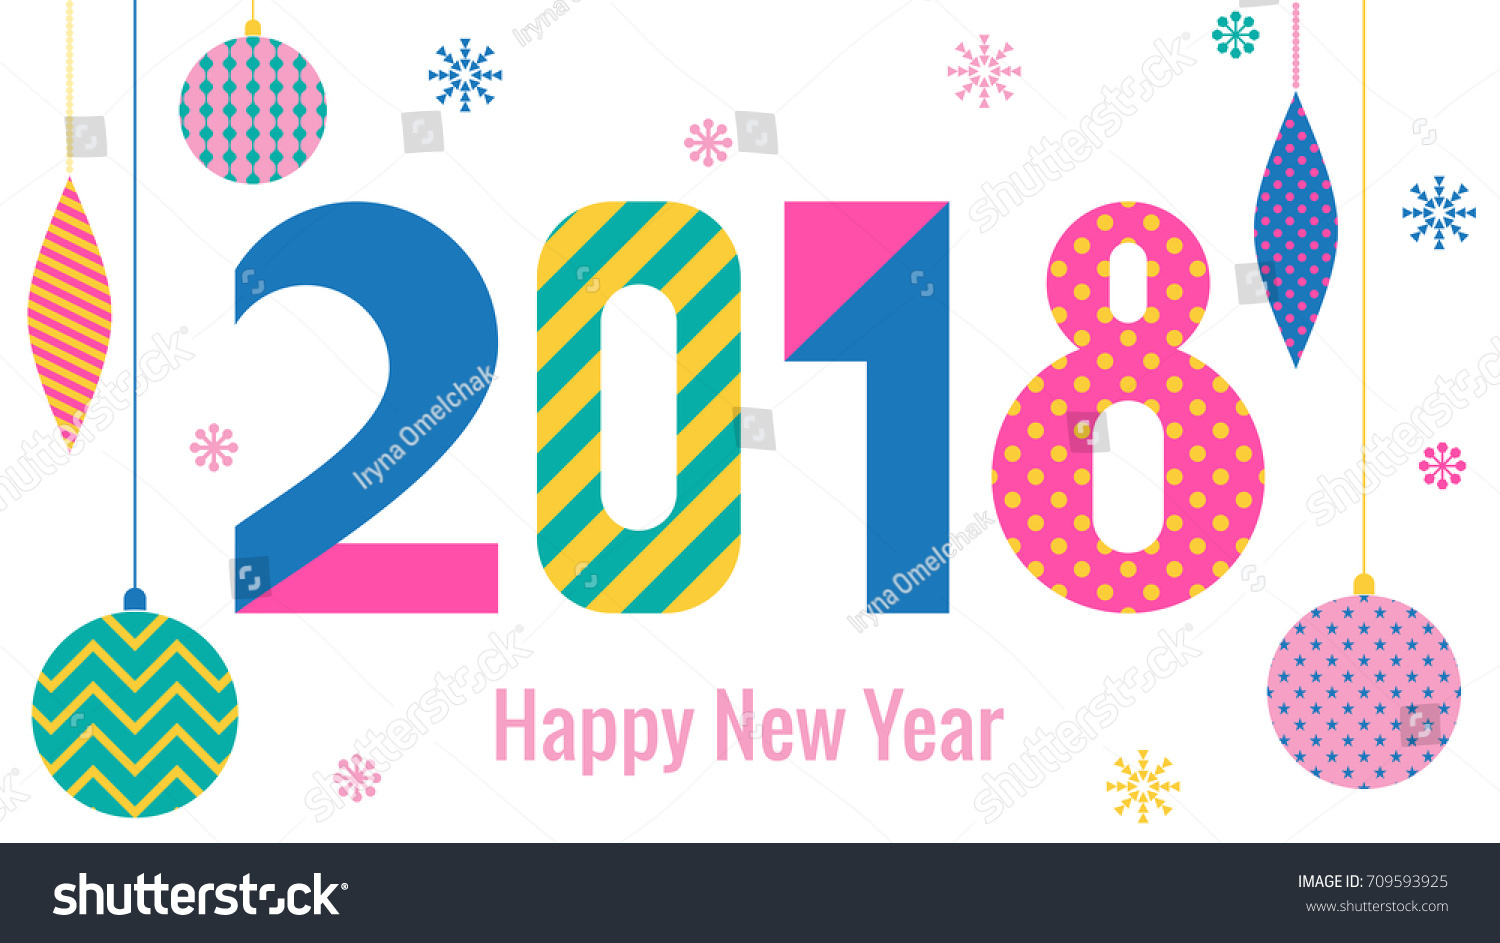 Stylish greeting card happy new year stock vector 2018 709593925 stylish greeting card happy new year 2018 trendy geometric font in memphis style of m4hsunfo